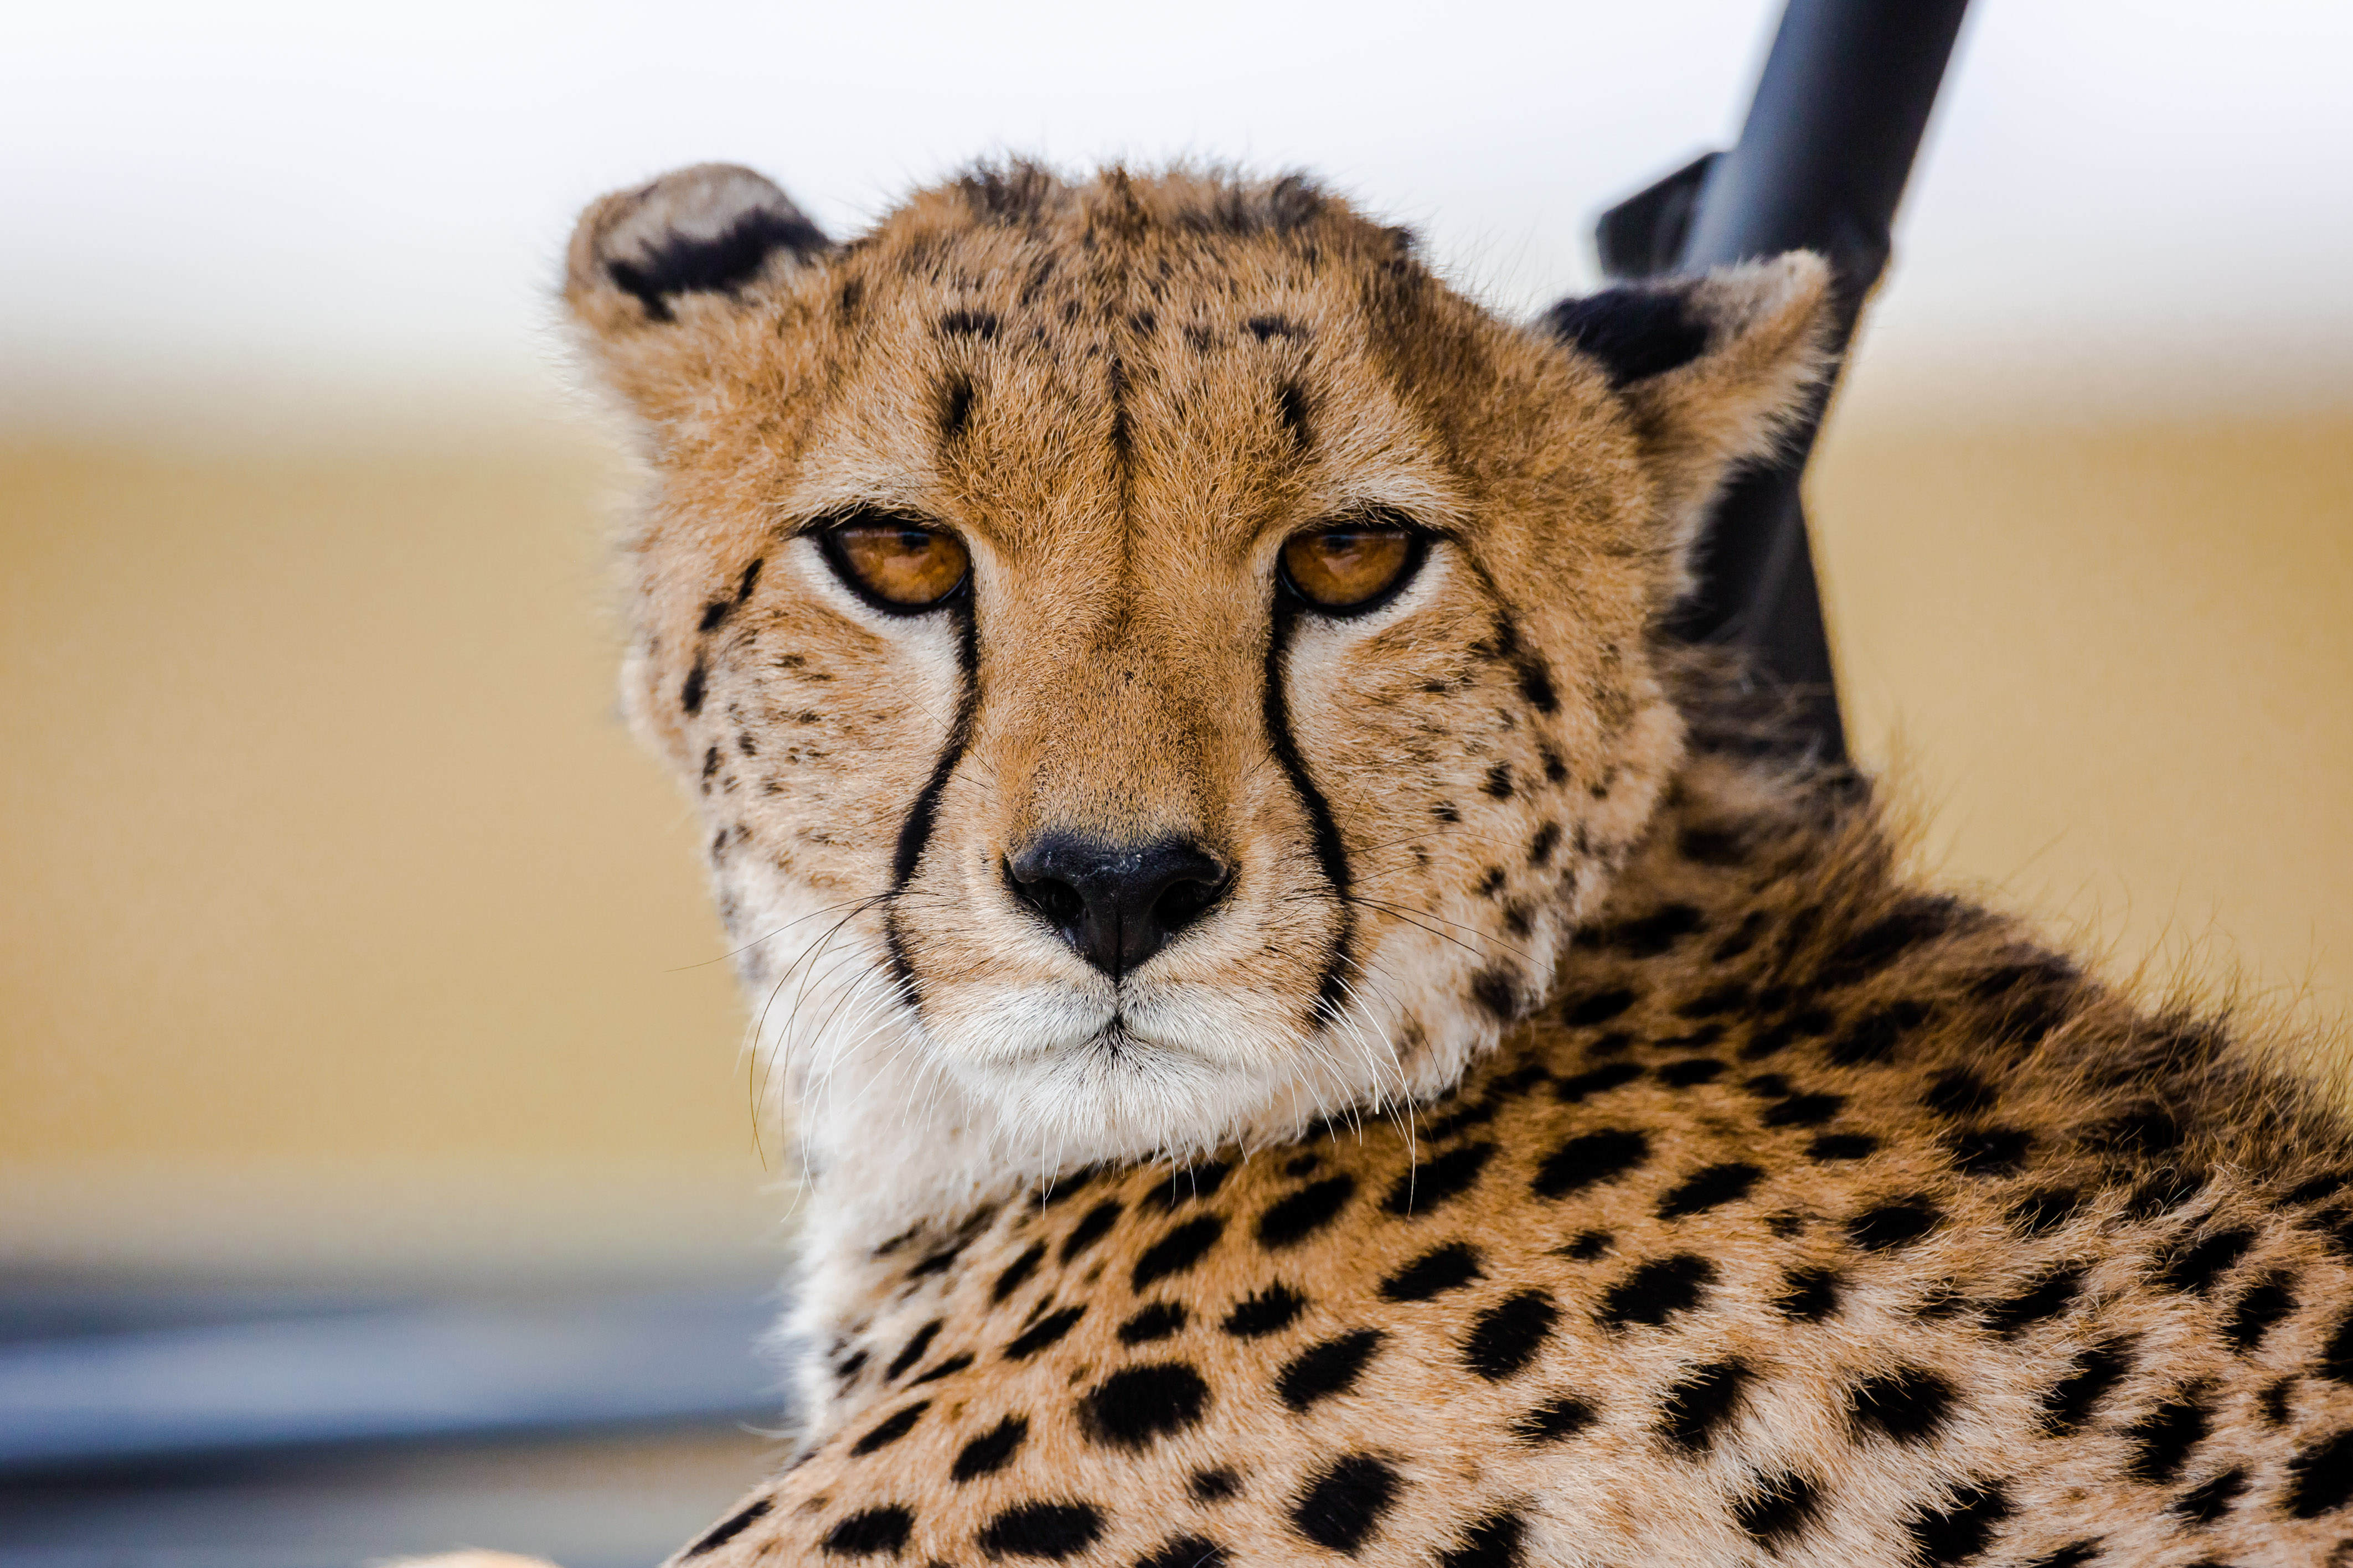 Conserving Cheetahs - Worldwide Experience